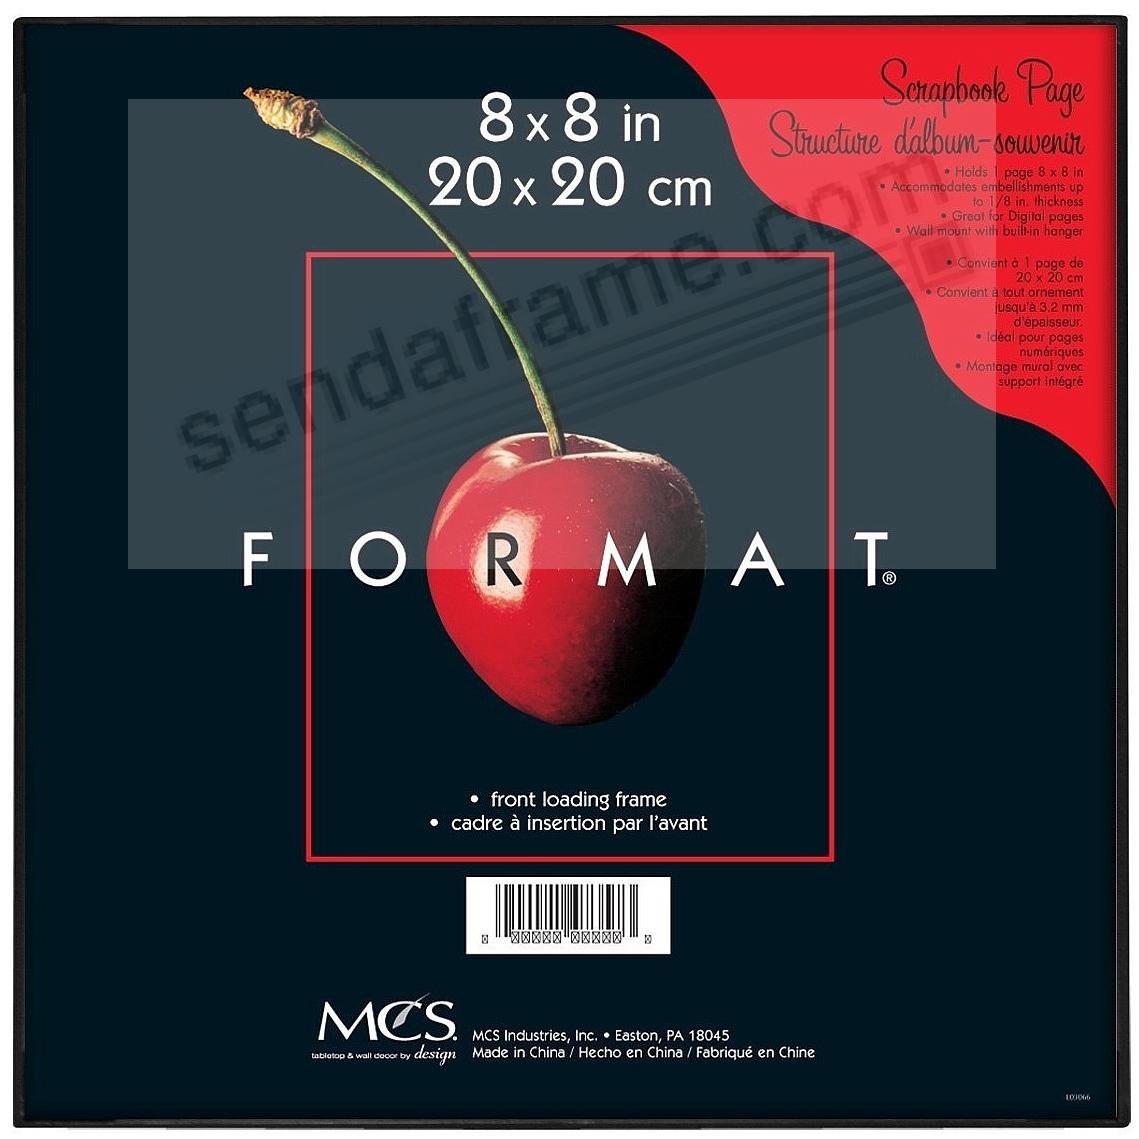 The ORIGINAL FORMAT FRONT-LOAD Black 8x8 Frame